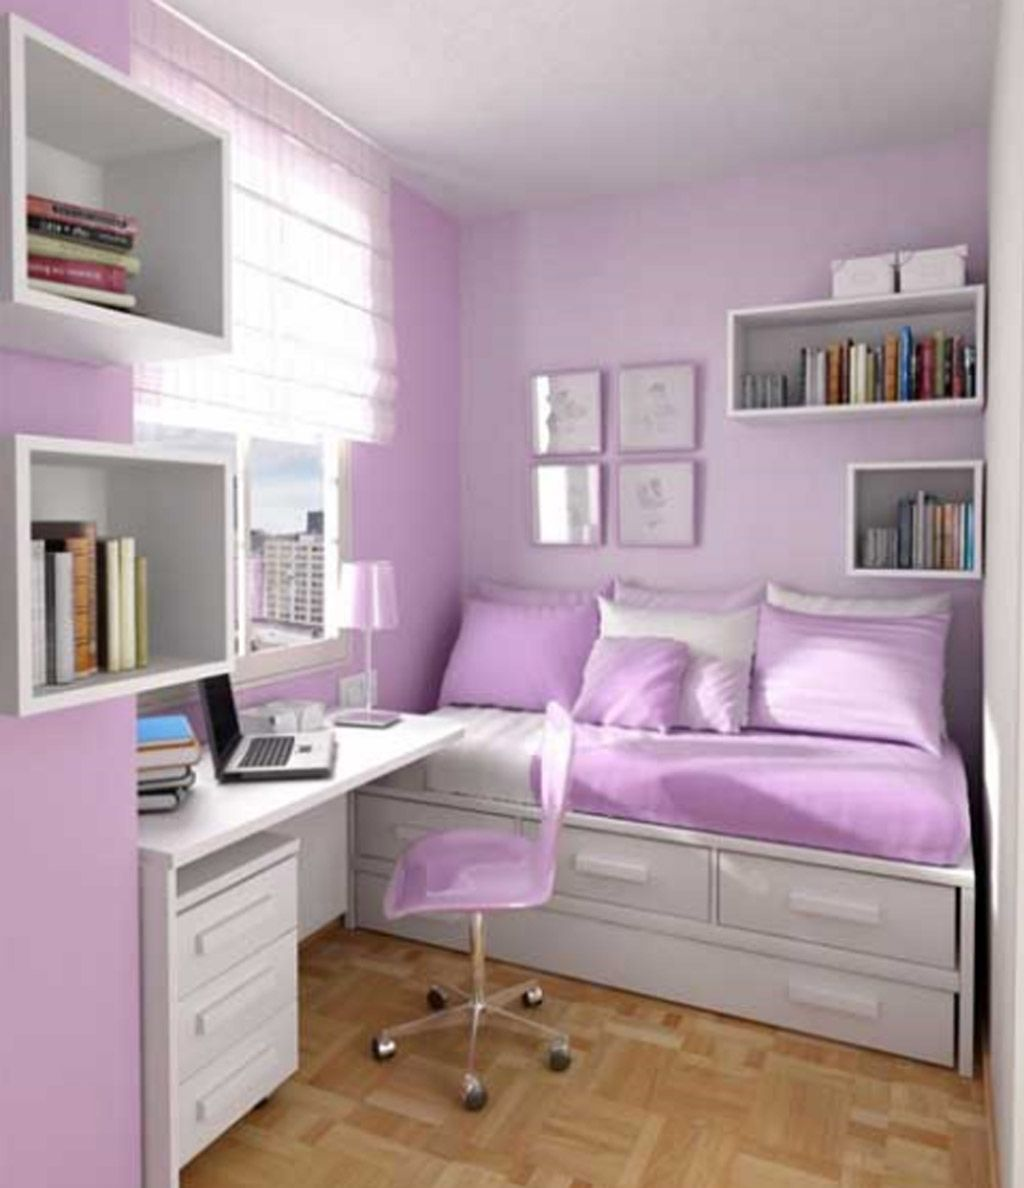 Cute bedroom ideas for teenage girls with small rooms - Cute Bedroom Ideas For Teenage Girls Best Interior Design Blogs Fashion Pinterest